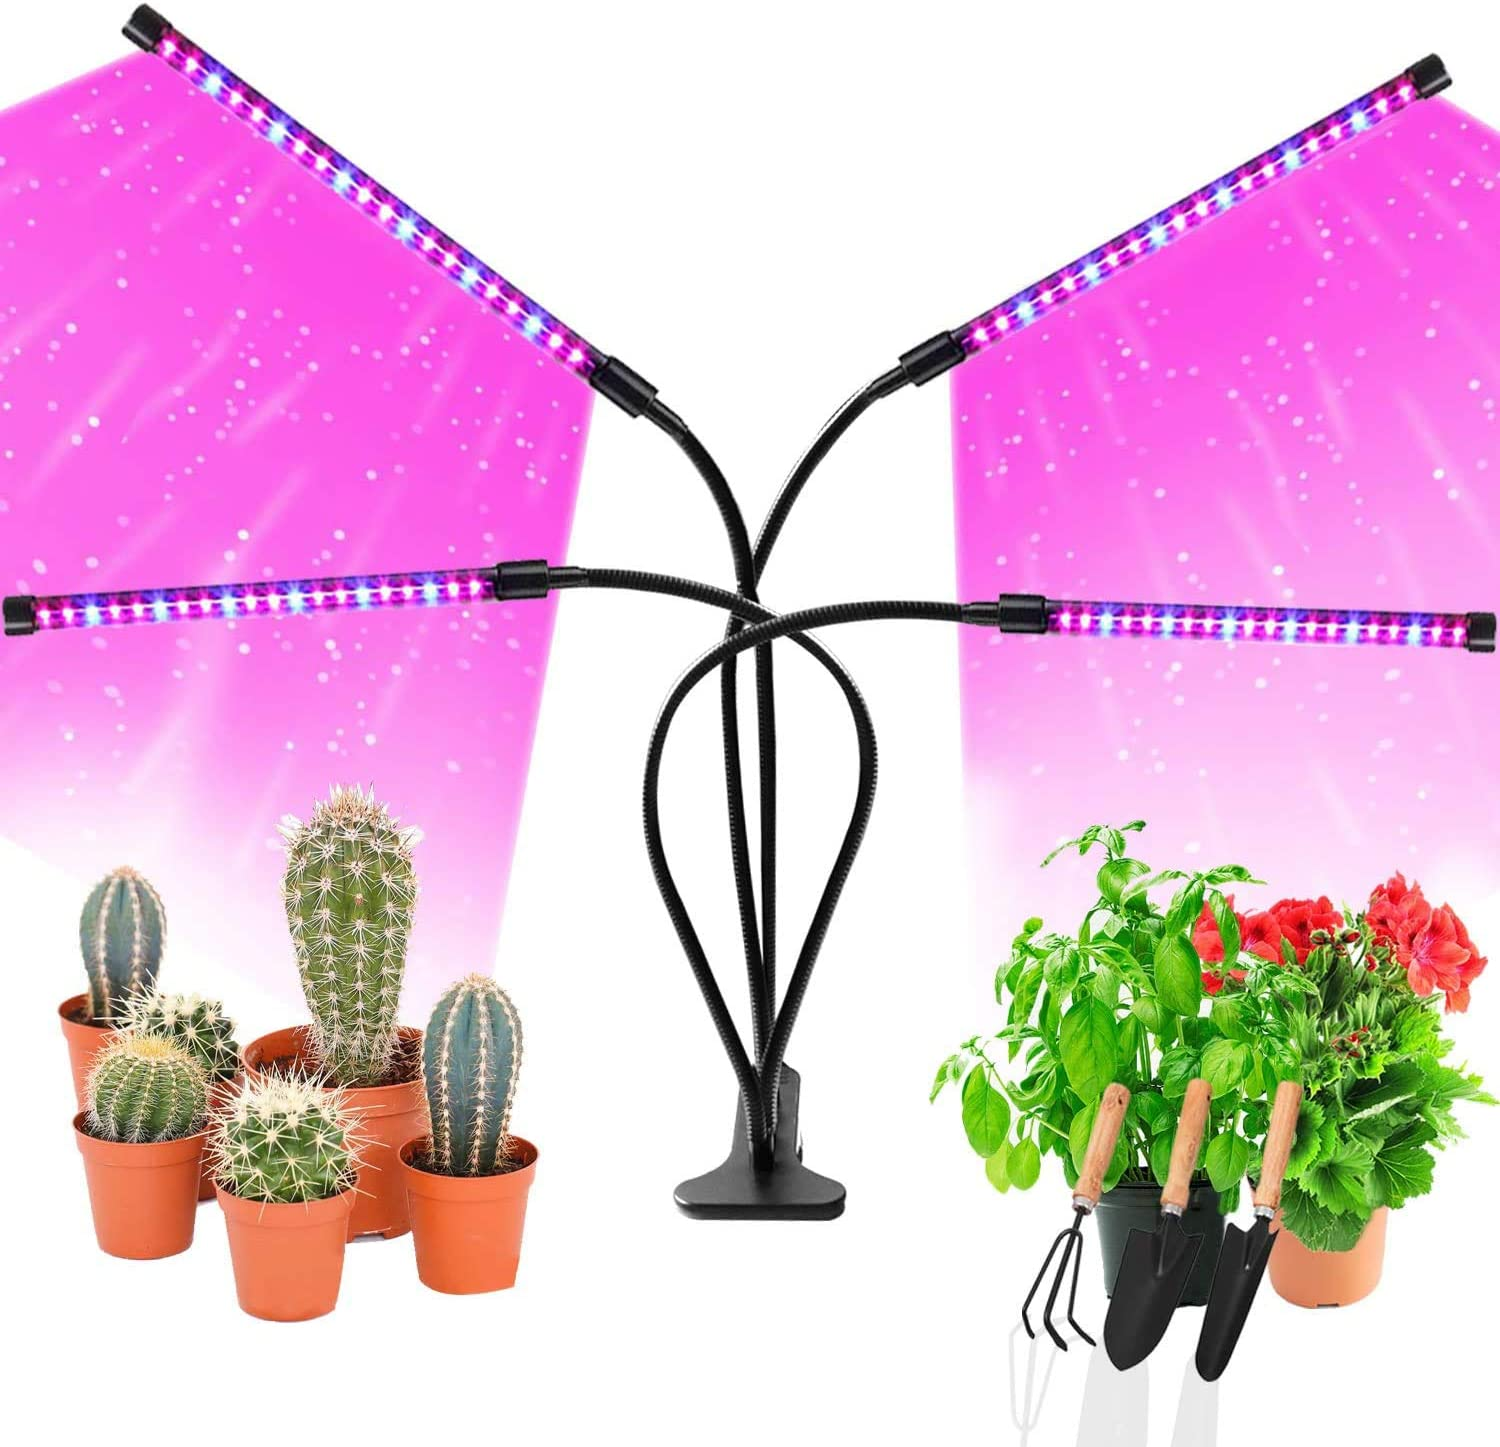 Amazon.com: LED Grow Lights for Indoor Plants, JUEYINGBAILI 80W Full  Spectrum Plant Lights with Auto ON/Off 3/9/12H Timer, 9 Dimmable Brightness  for Indoor Succulent Plants Growth : Patio, Lawn & Garden